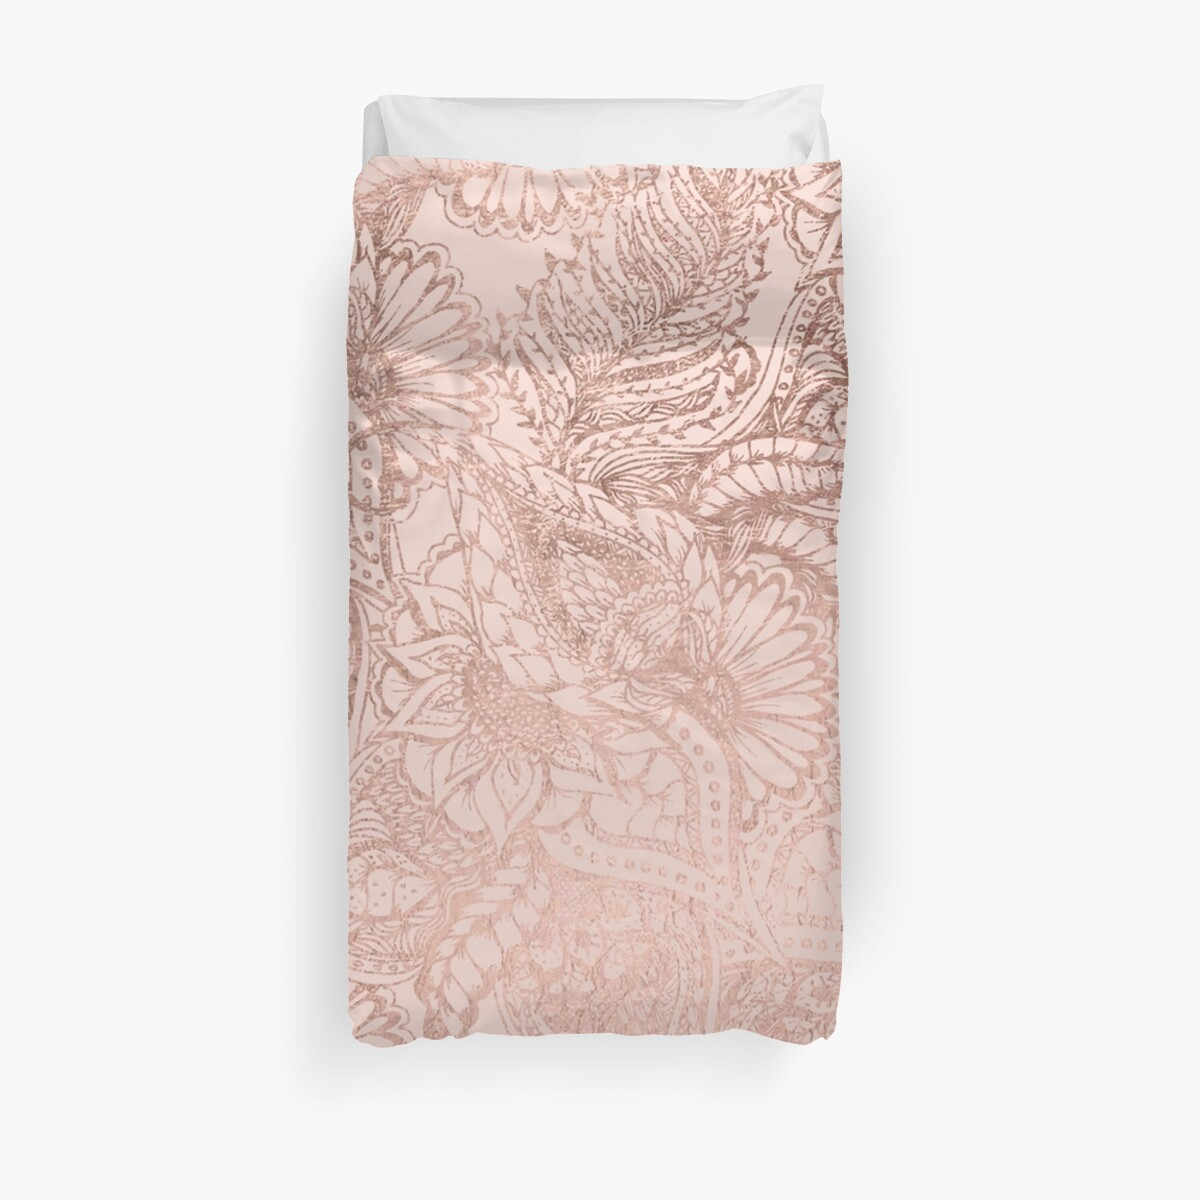 gray drawn hand and feathers silver duvet blush pink large cover